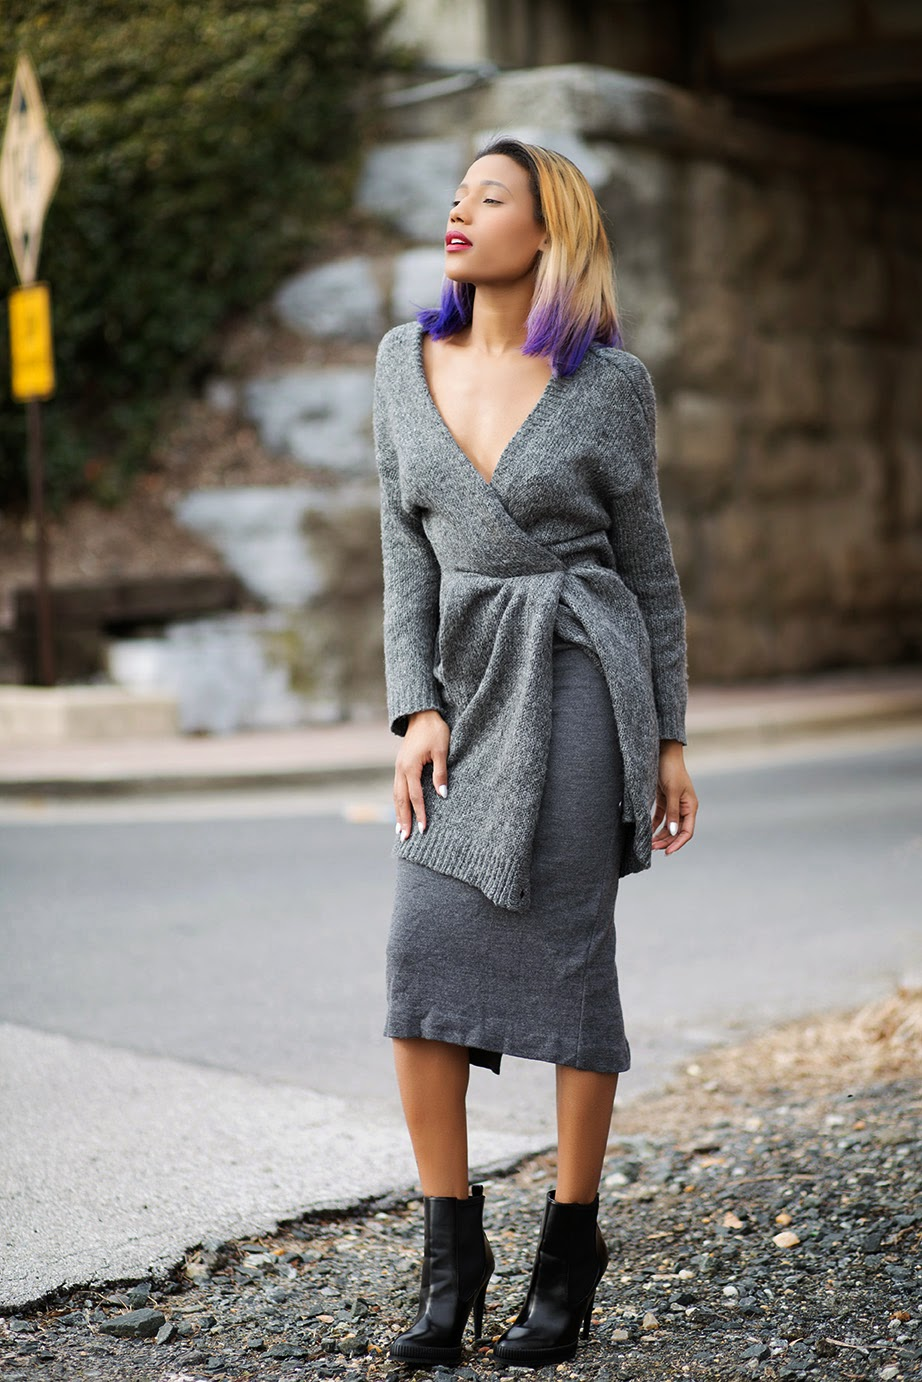 Be Loud Be You Blog_Krystin Hargrove_DC Blogger_Ksenia Pro Photography_DC Style Blog_Casual Look